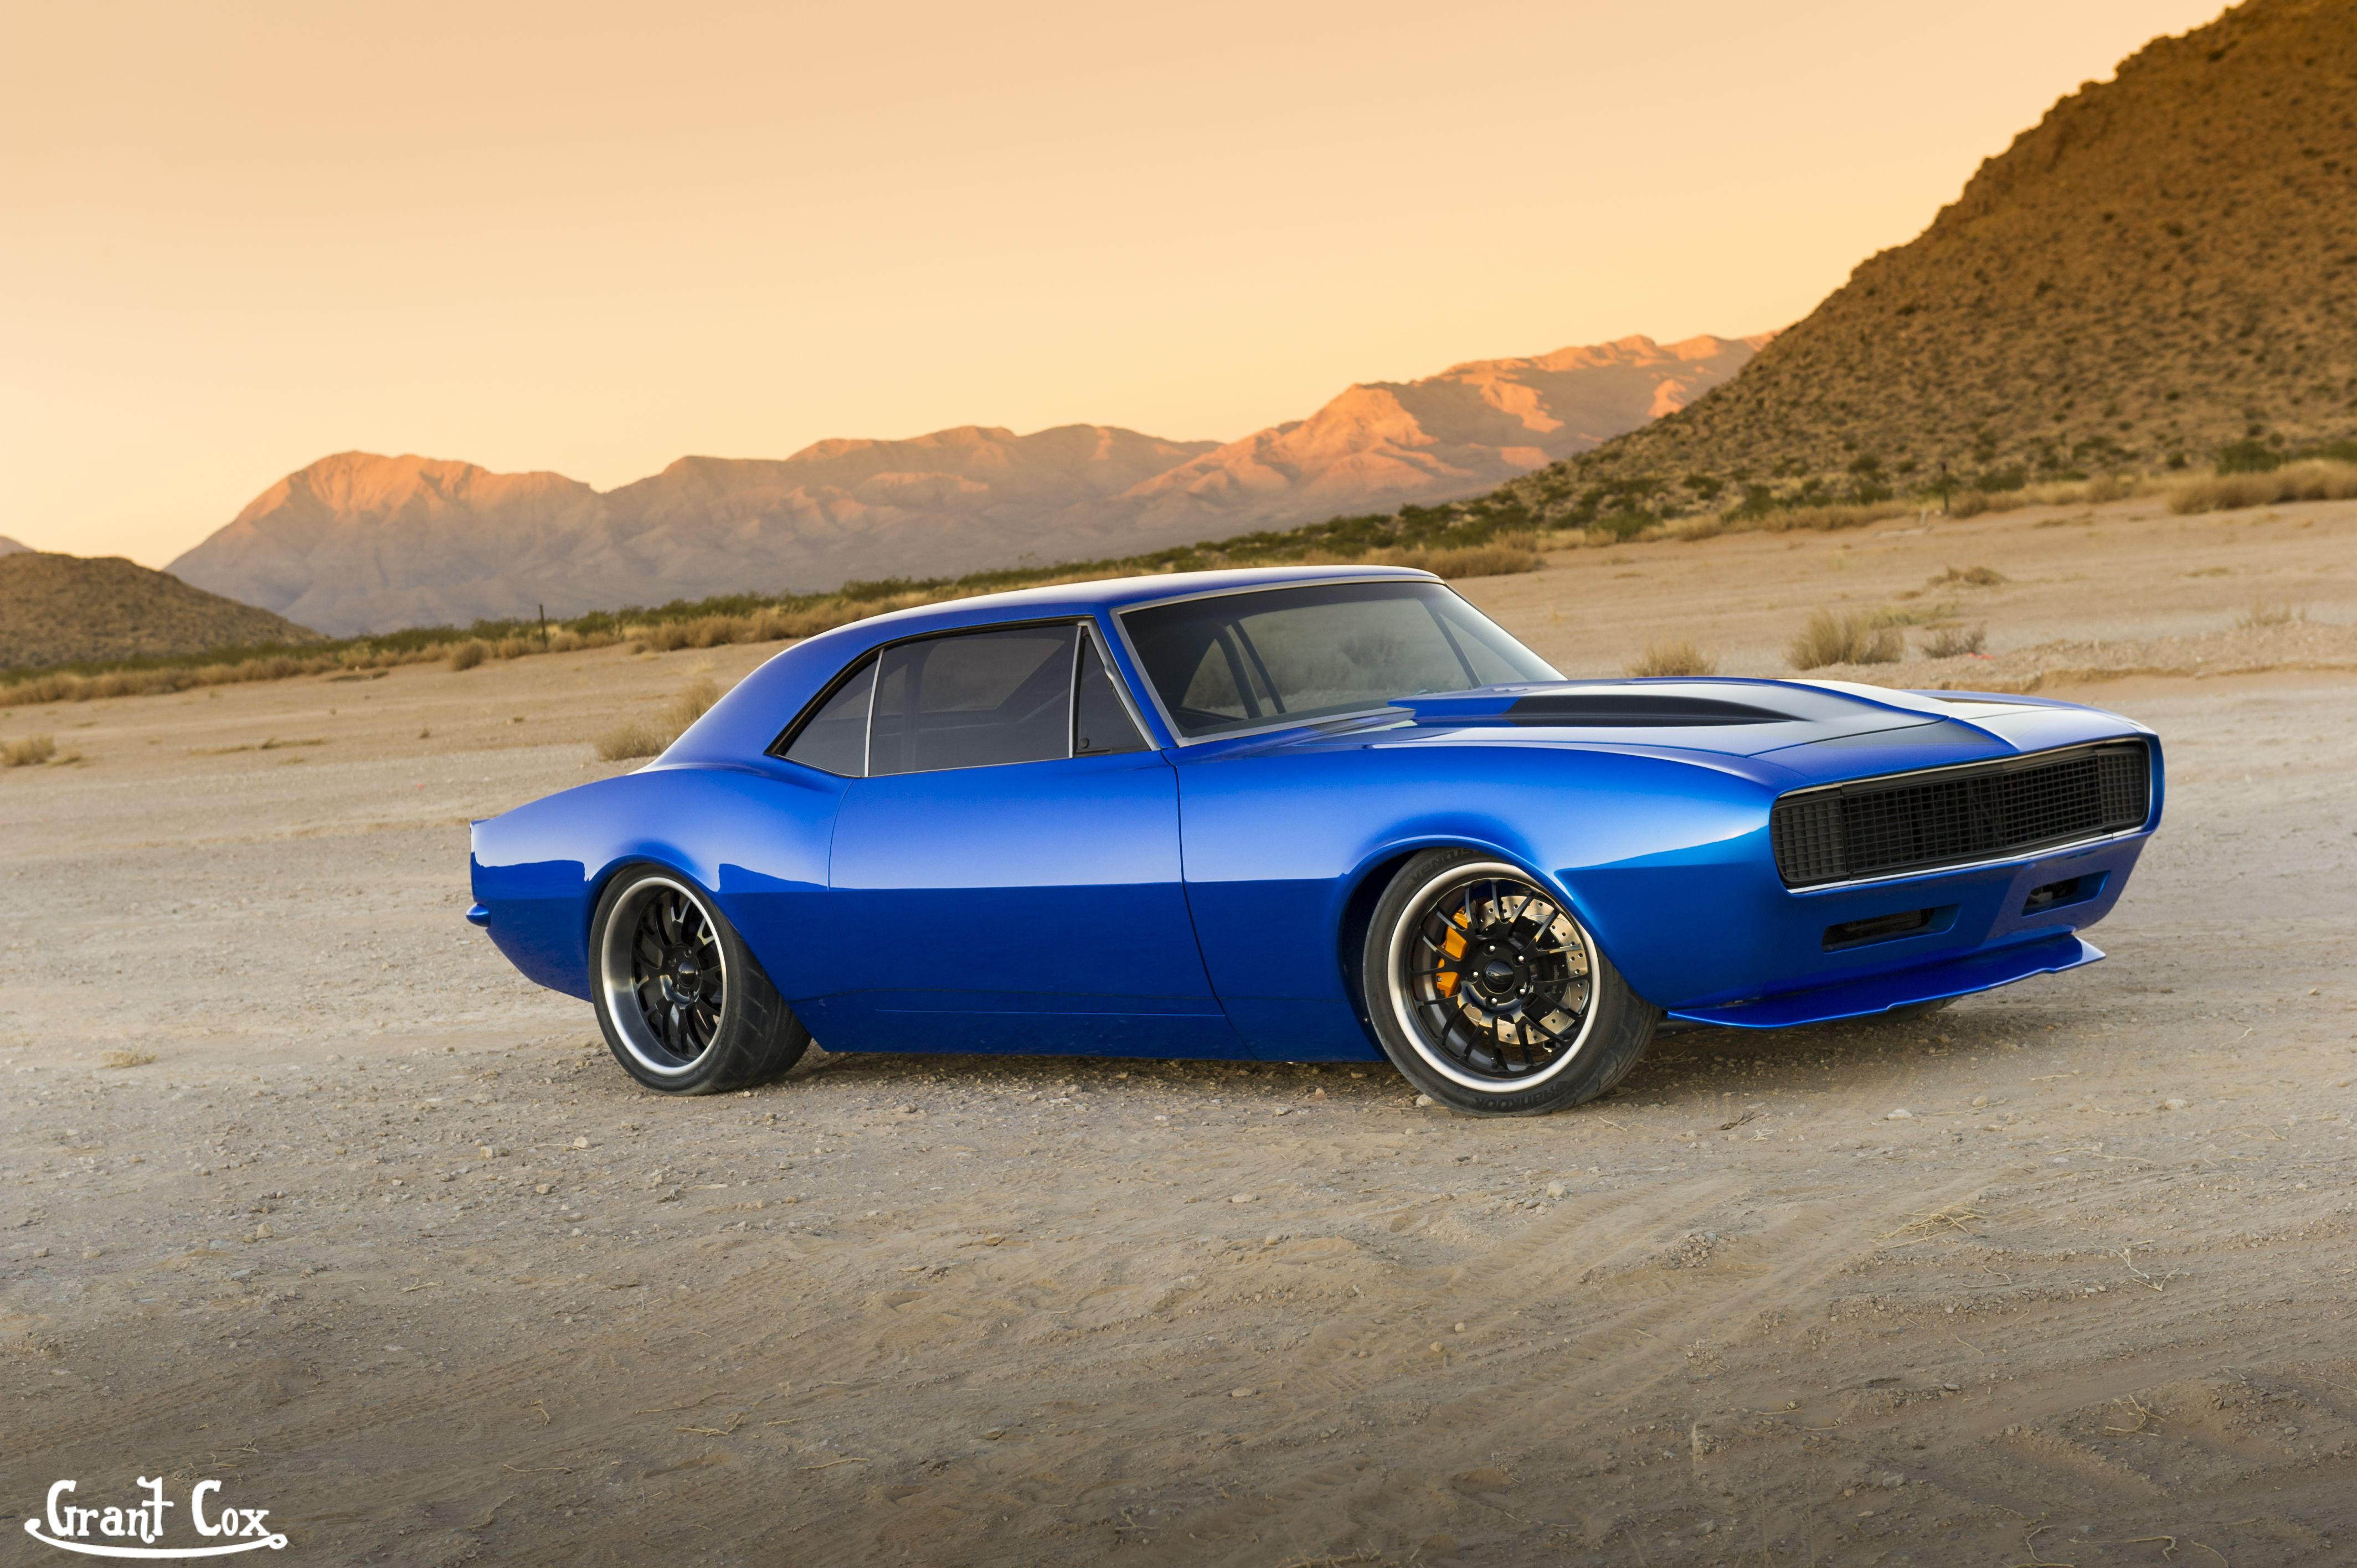 touring, chevy and modified cars on pinterest